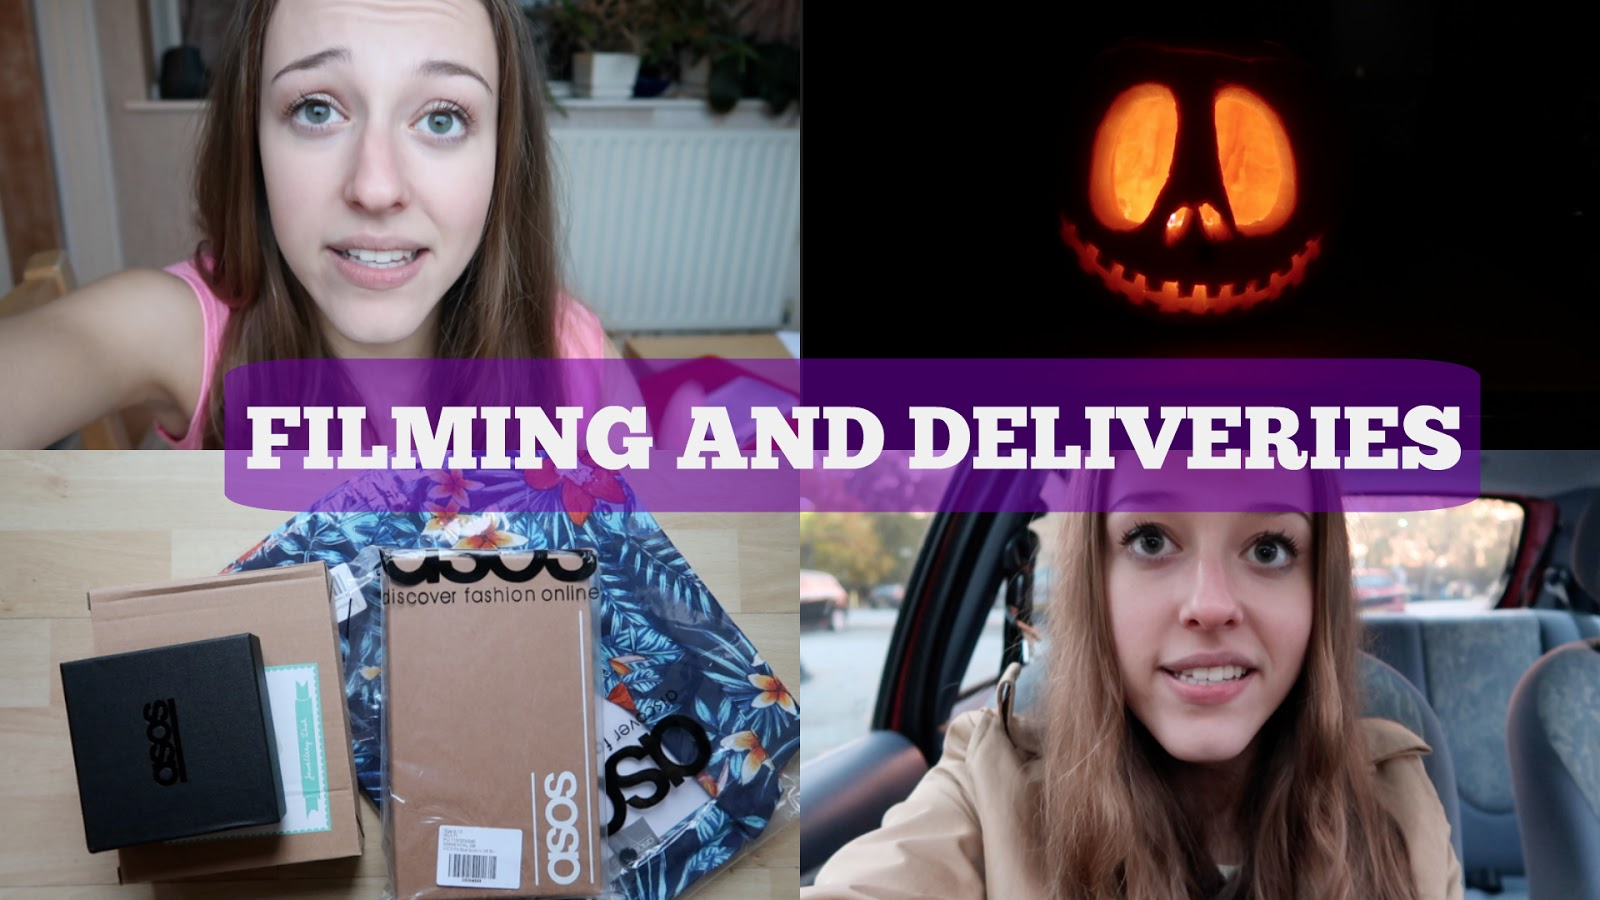 Weekly Vlog #1 | Filming and Deliveries